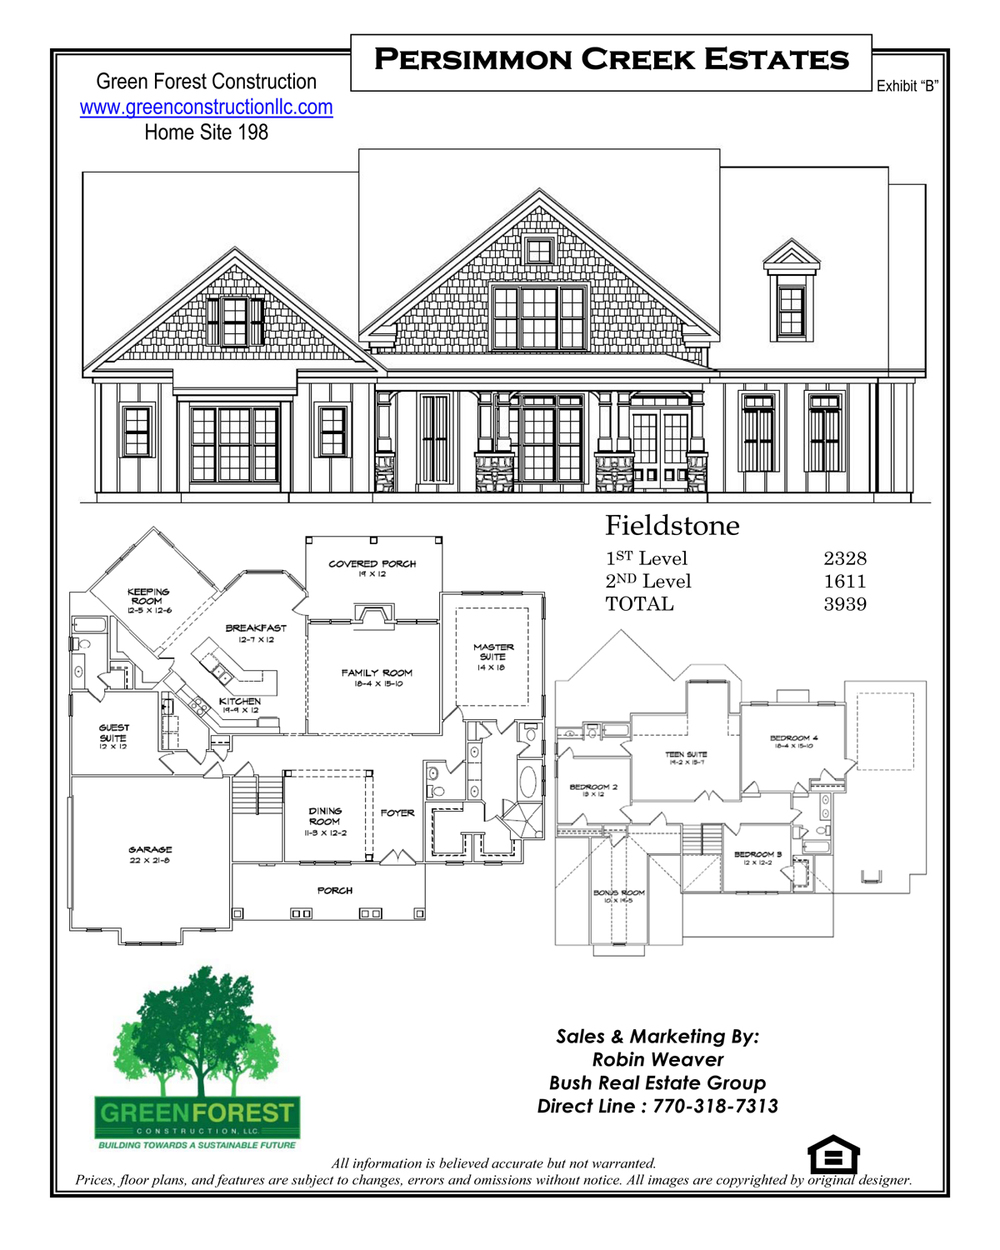 persimmon creek estates u2014 green forest construction